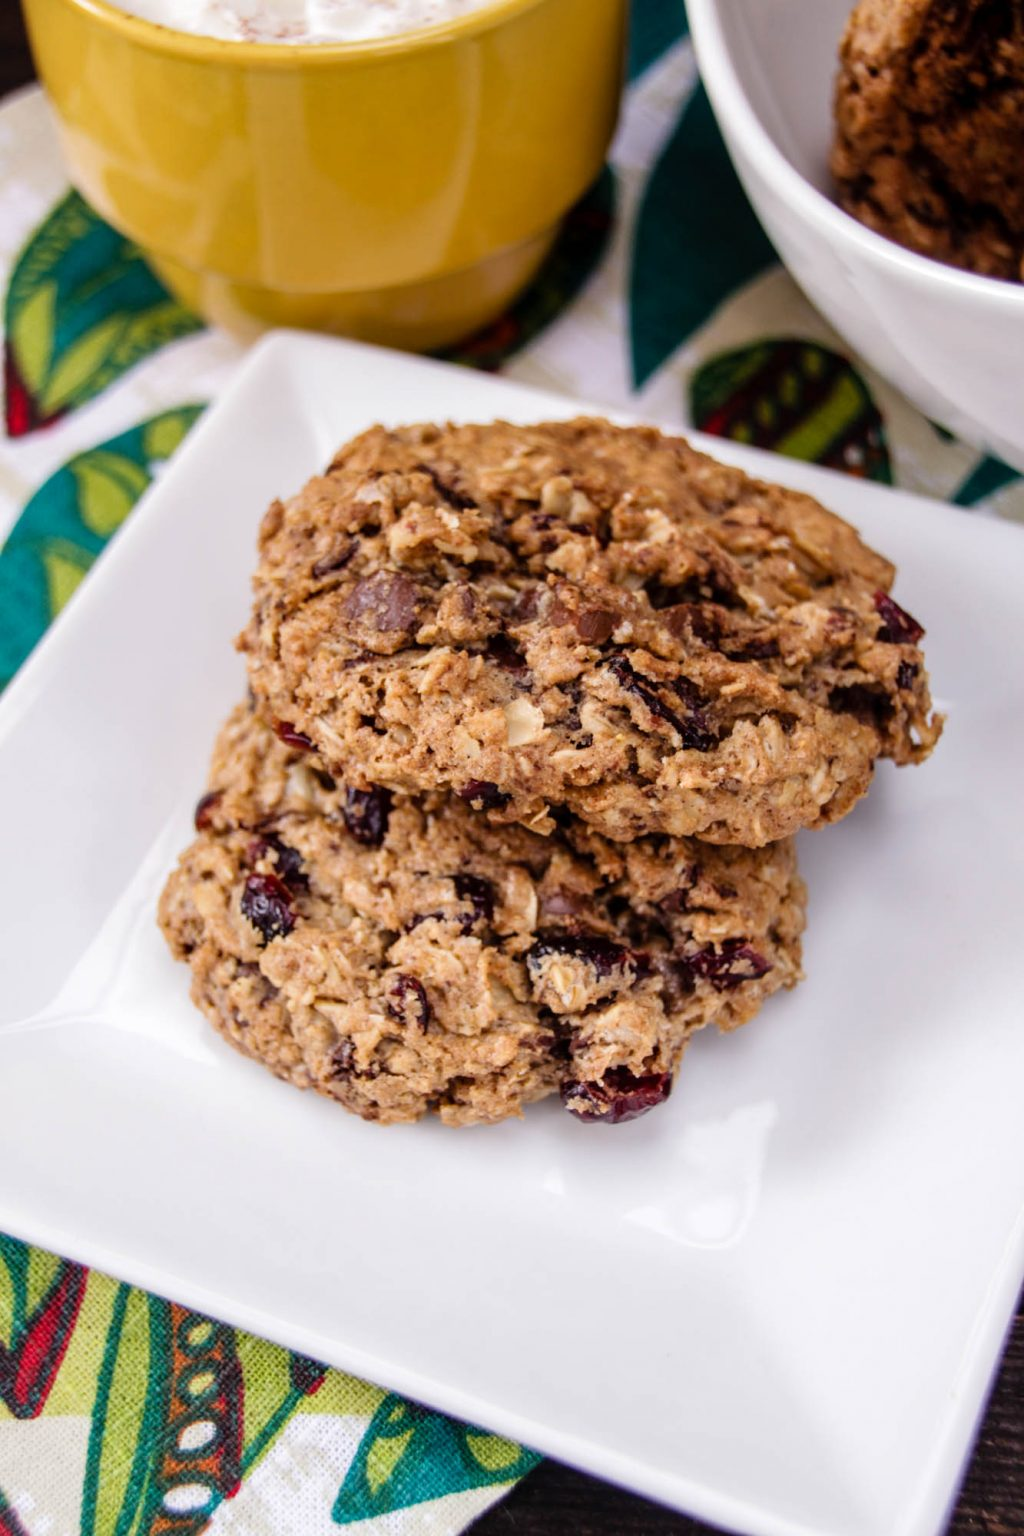 Cherry Chocolate Chunk Oatmeal Cookies on white plate